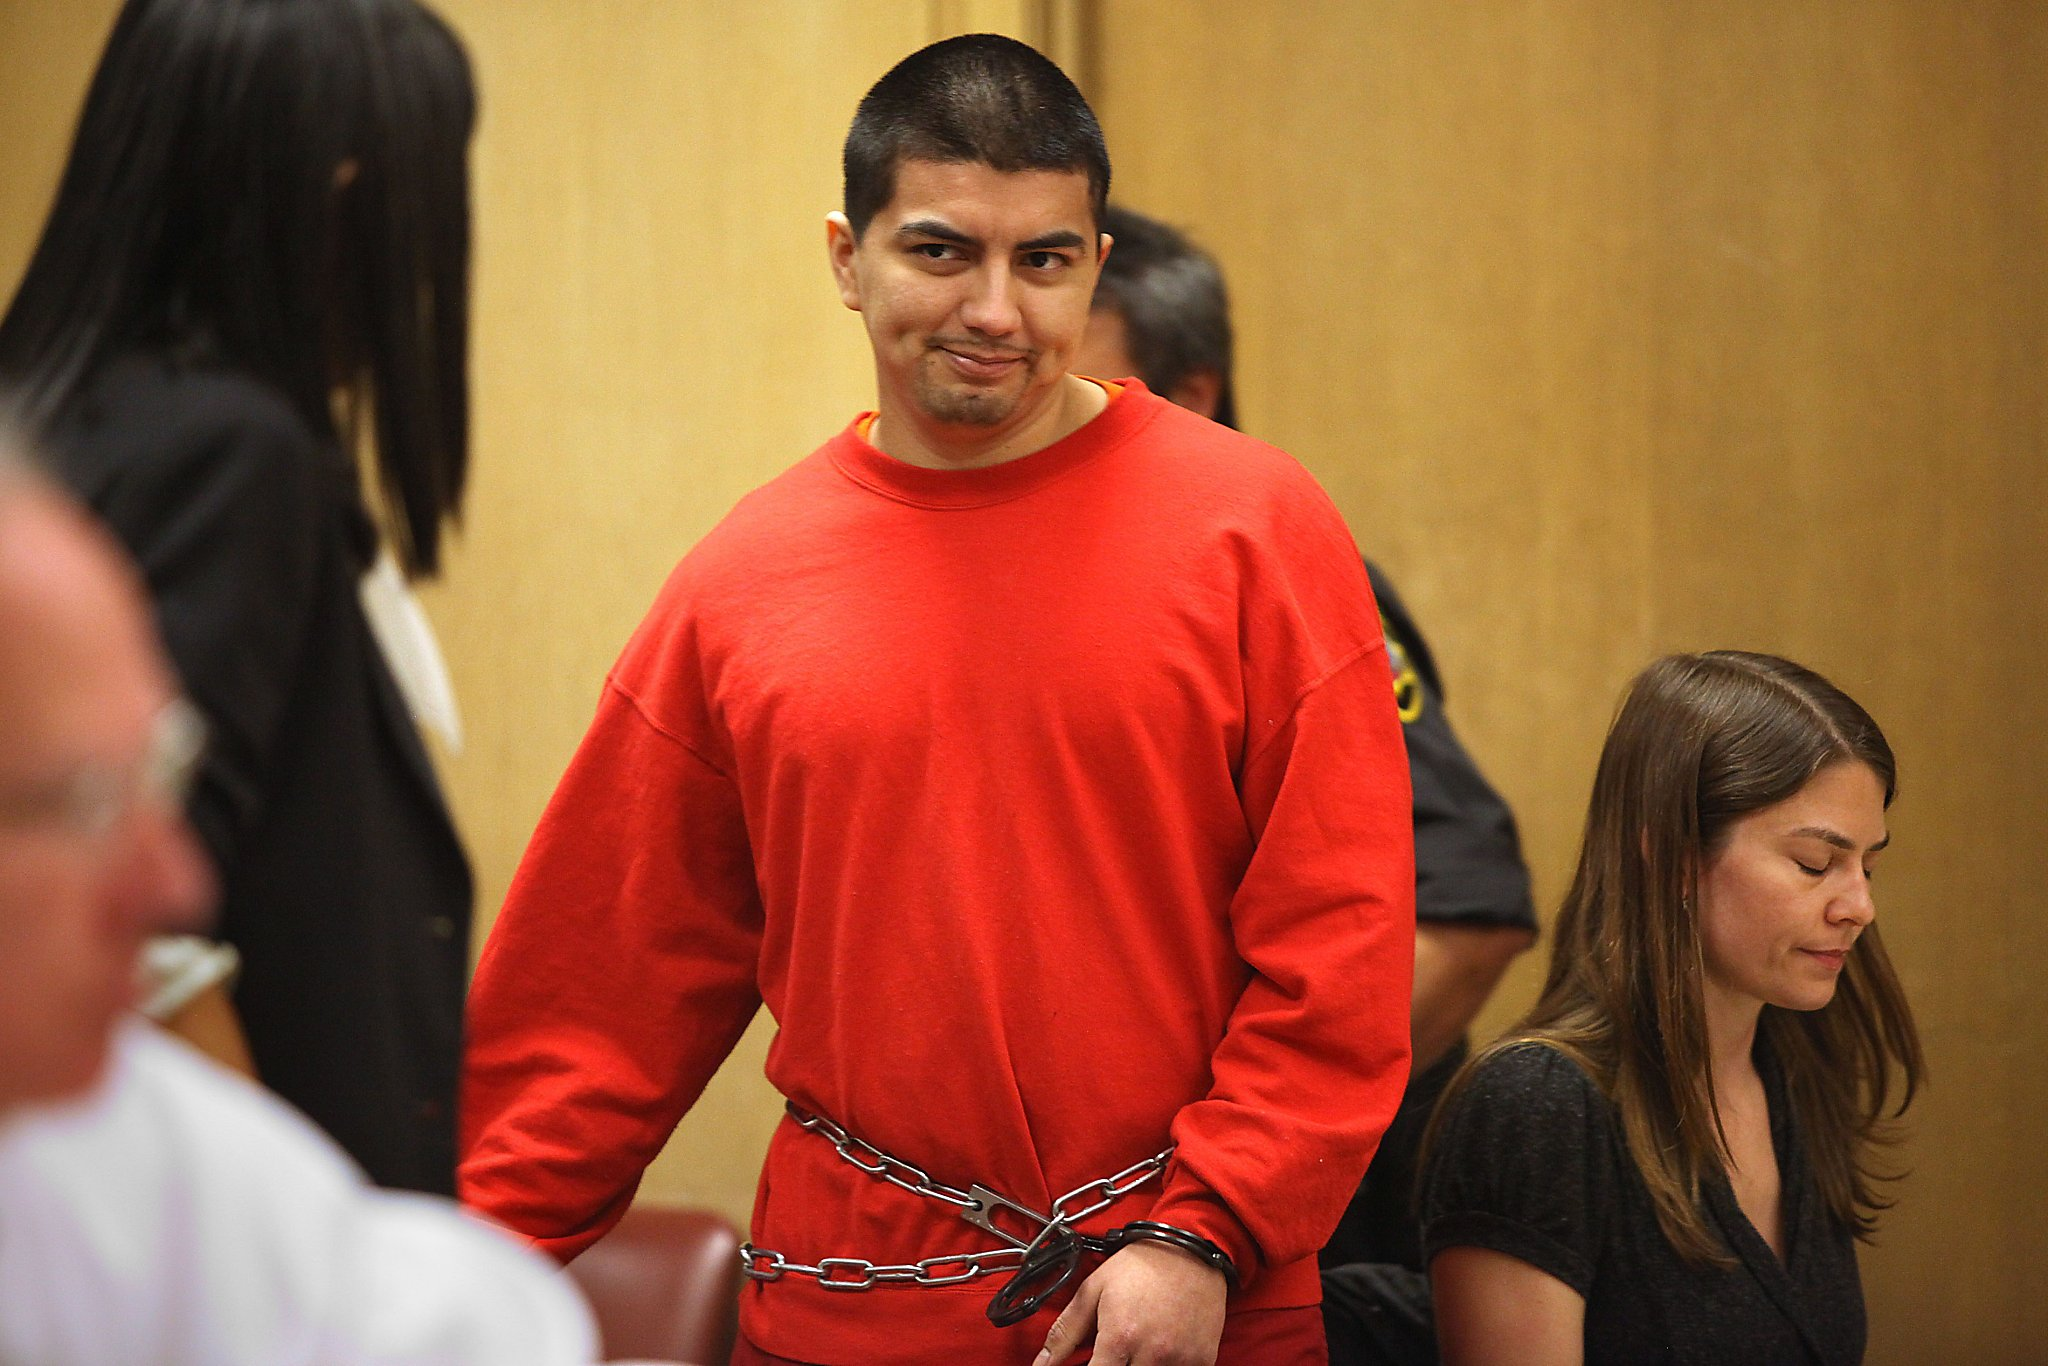 Killer Of S F Father 2 Sons Loses Appeal Of Convictions